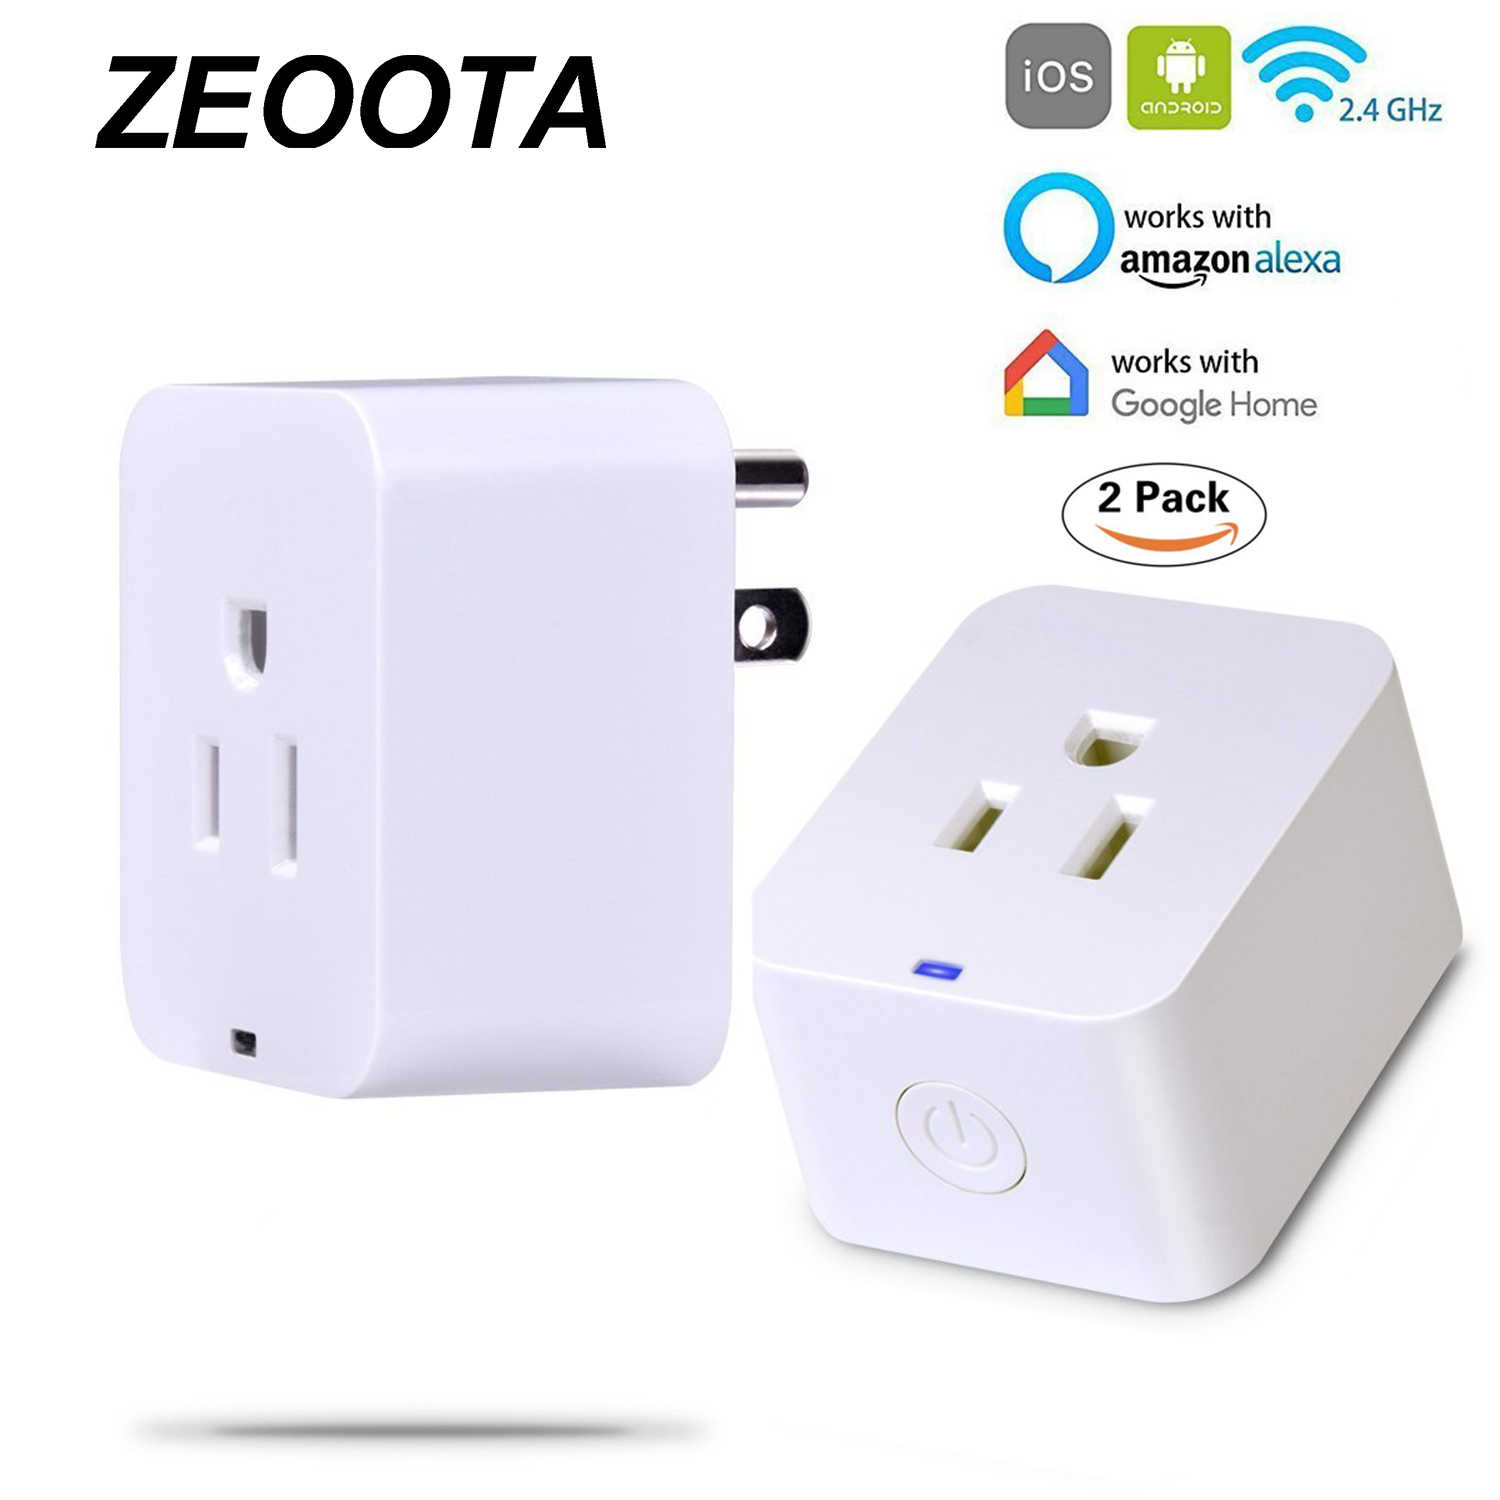 Homekit Compatible Hub Homekit Smart Power Plug Outlet Switch Socket Compatible With Amazon Alexa Google Home No Hub Required Timing Function 2pack